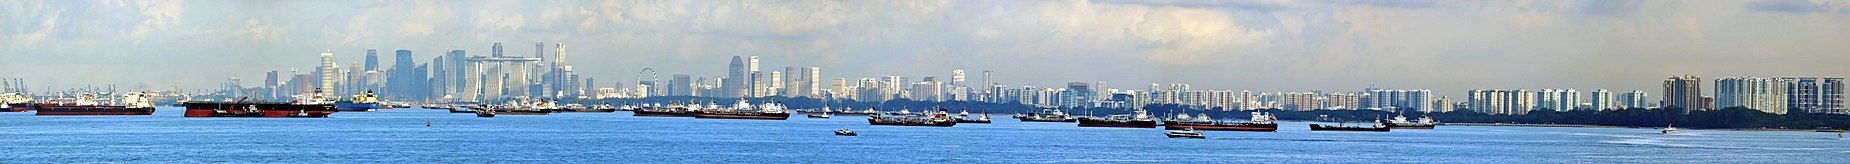 Panorama of Singapore's busy waterfront